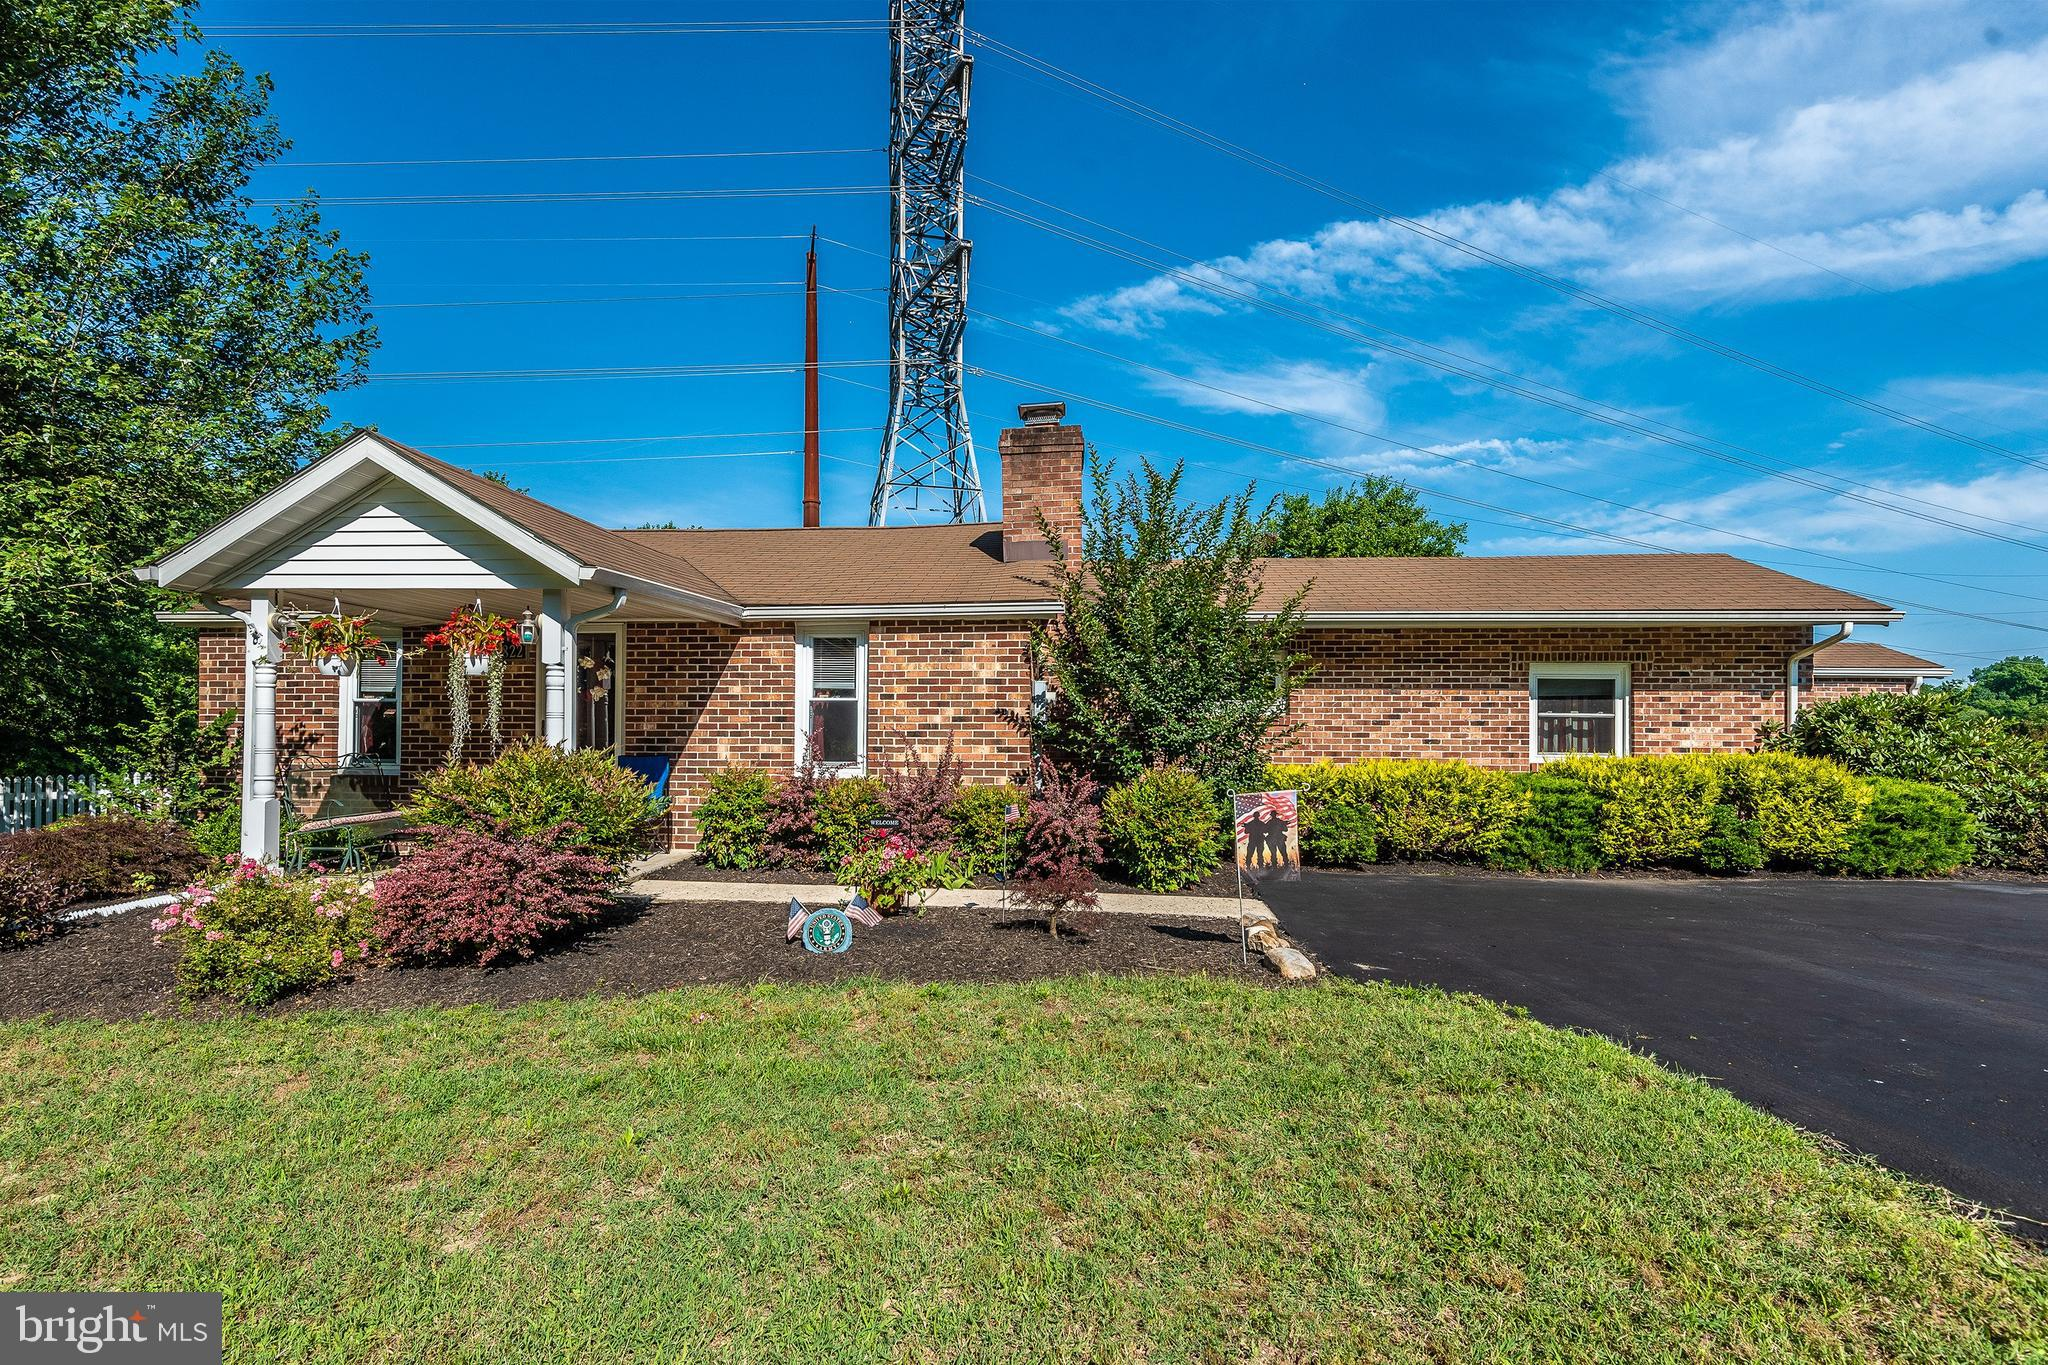 13822 DRAPERS MILL ROAD, GREENSBORO, MD 21639